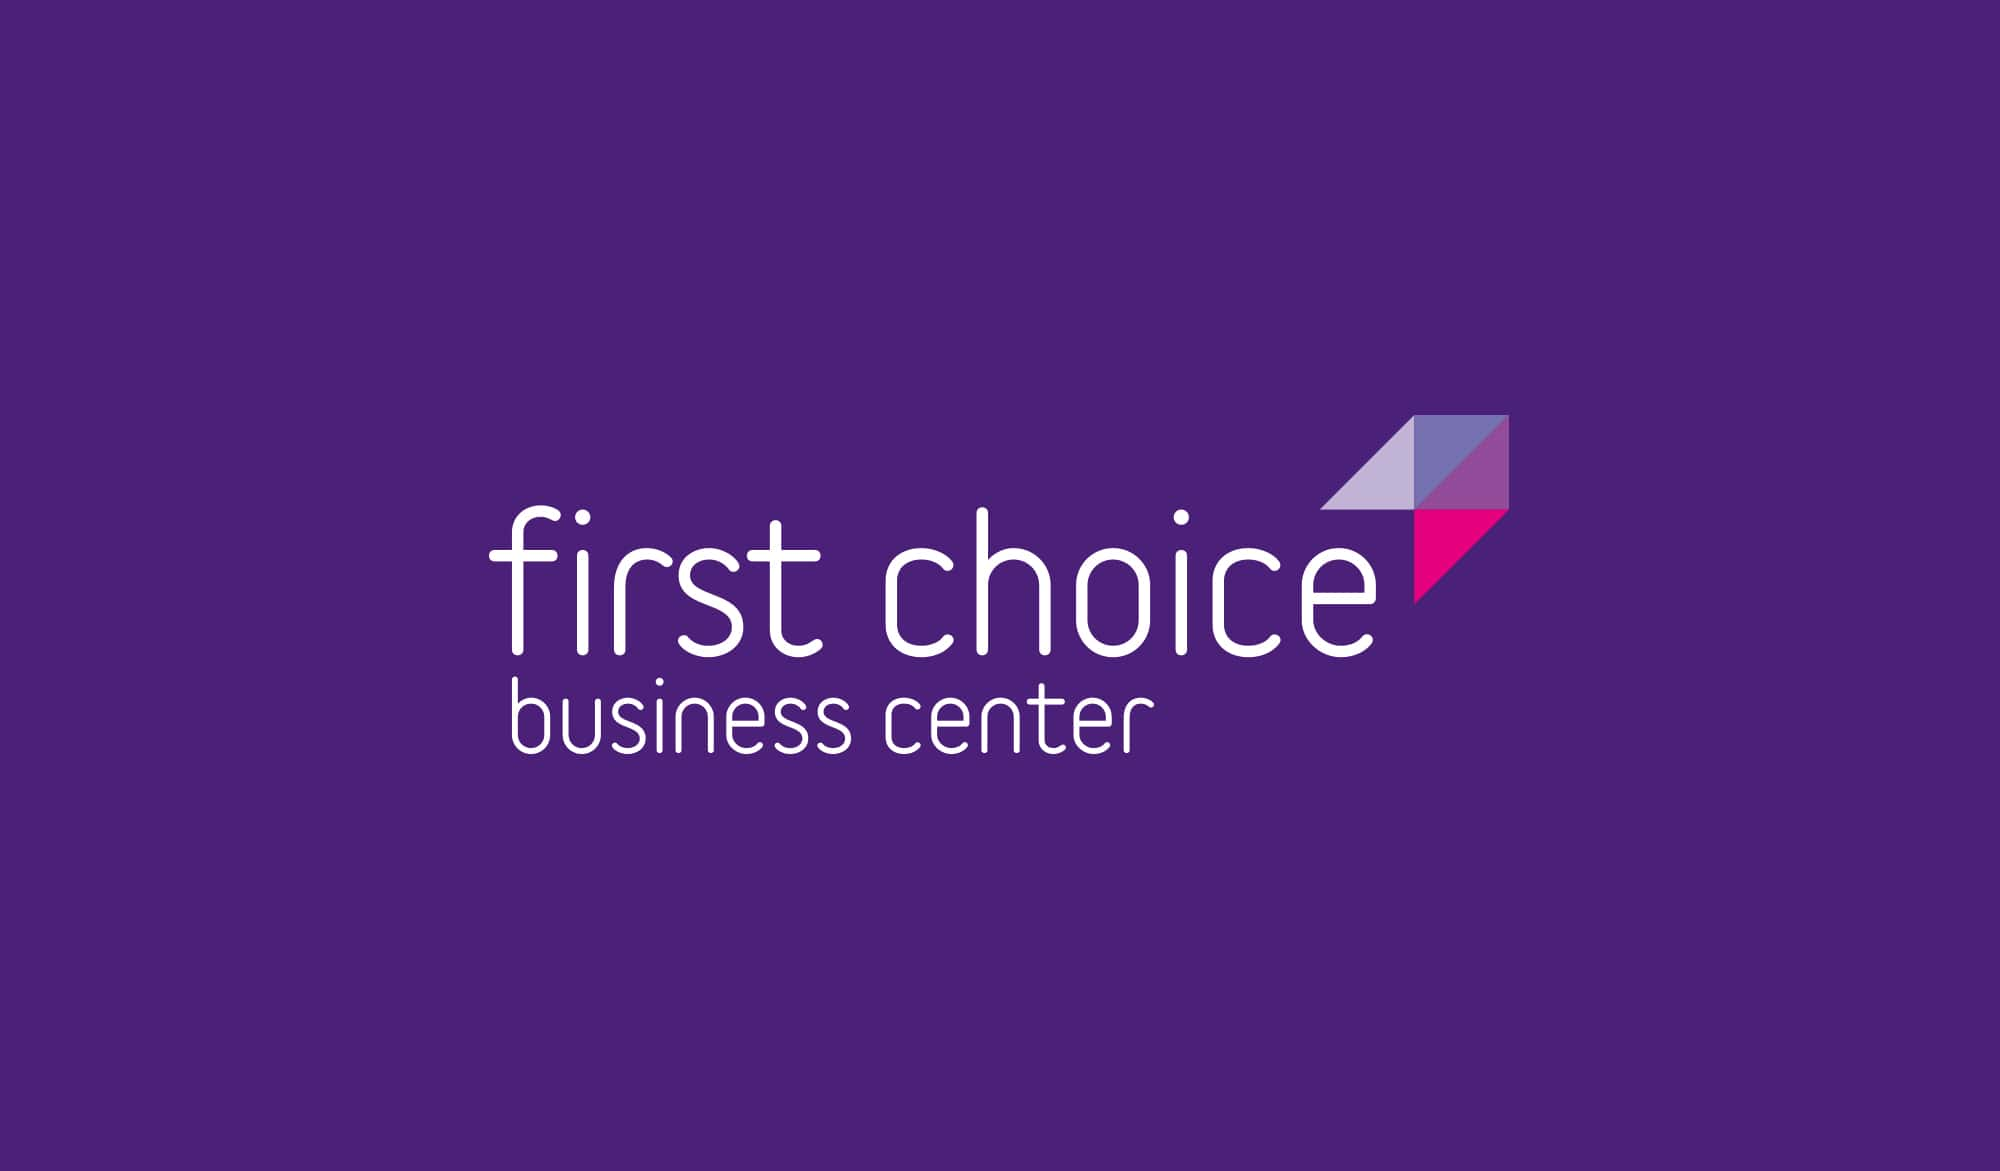 First Choice Business Centre logo reversed